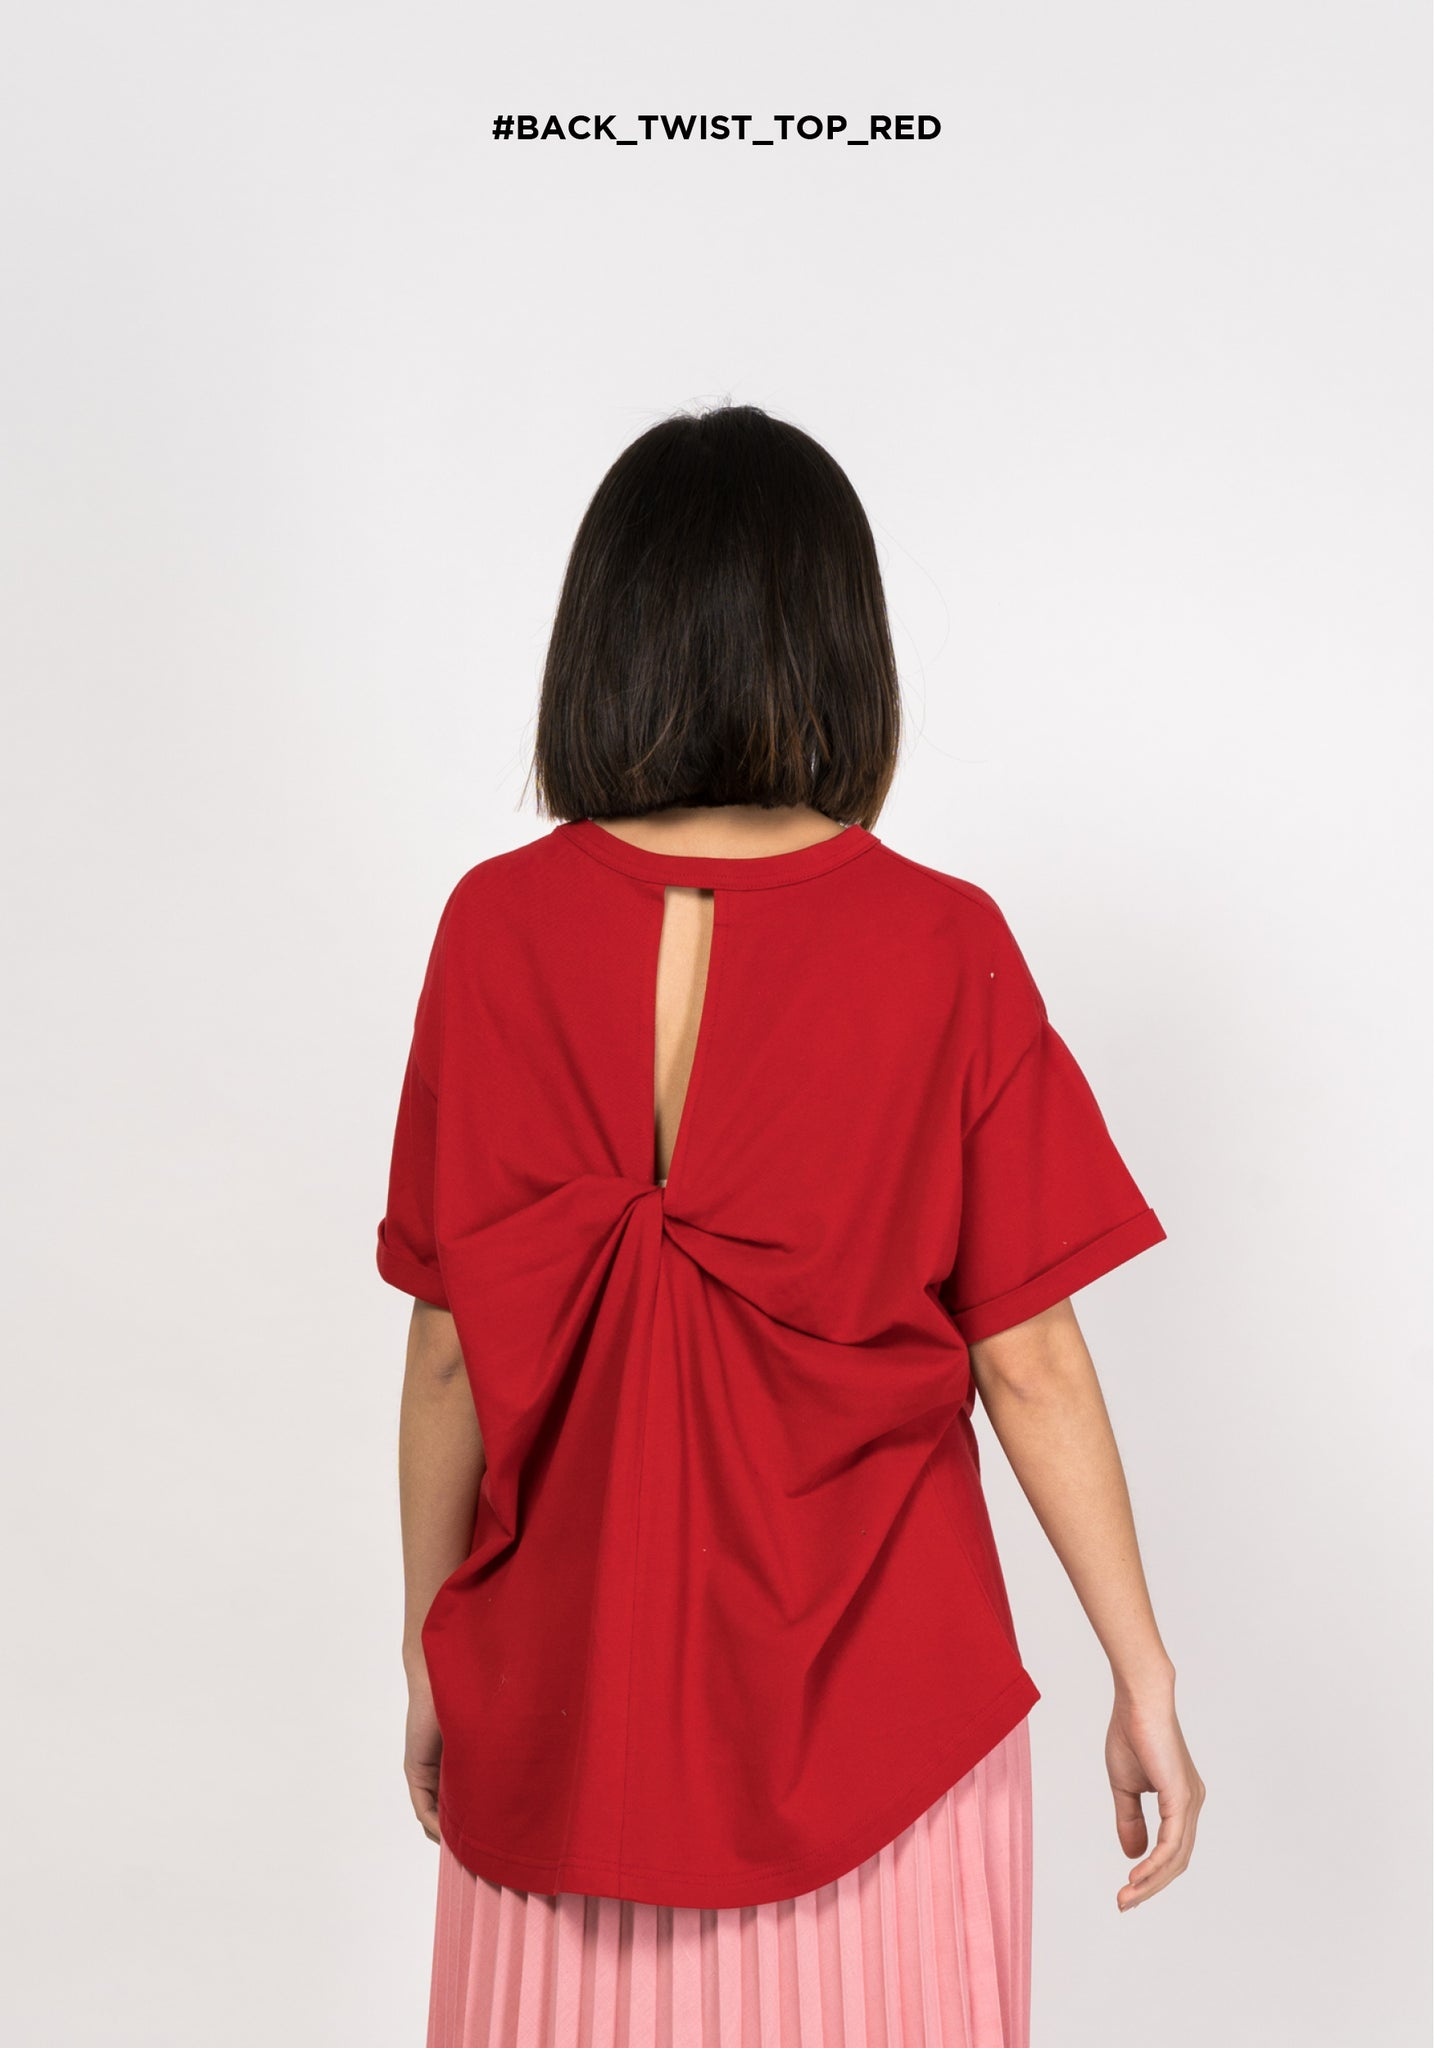 Back Twist Top Red